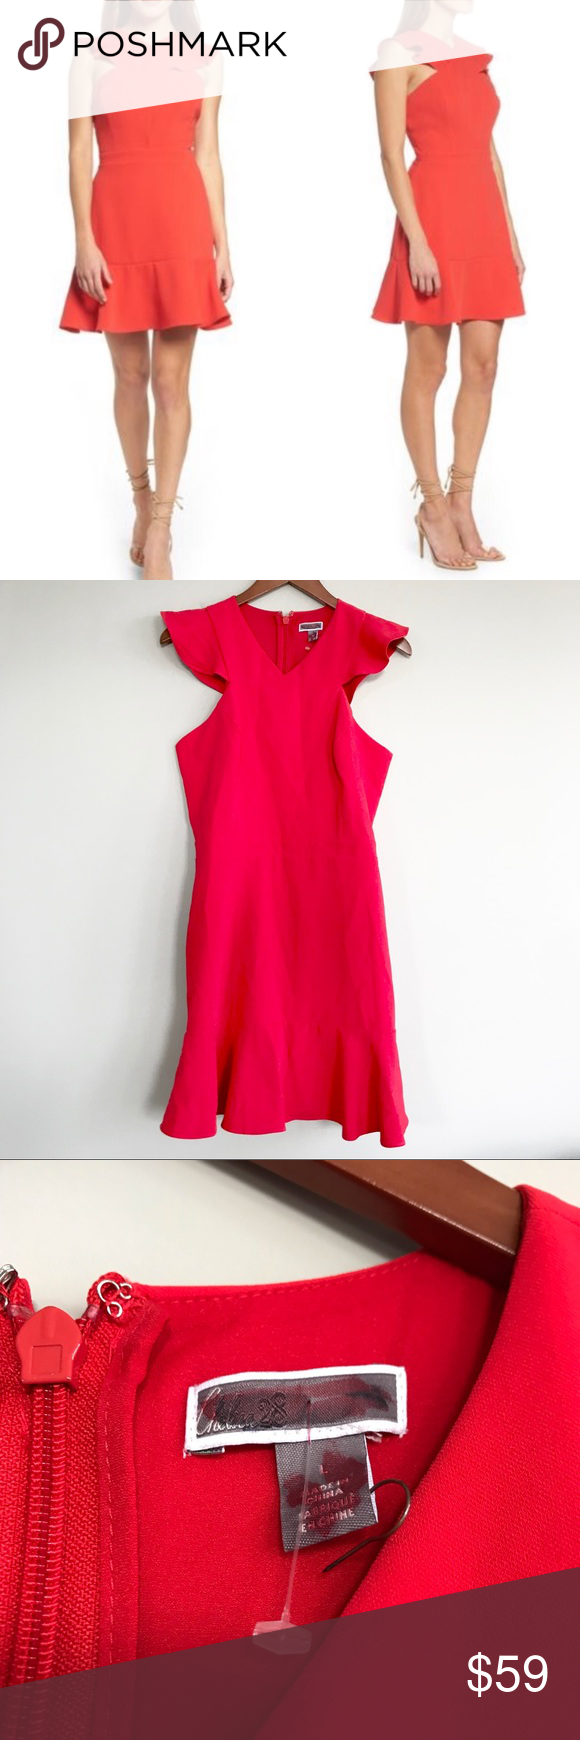 Chelsea 28 Red Cross Front Ruffle Dress Front Ruffle Dress Dresses Clothes Design [ 1740 x 580 Pixel ]